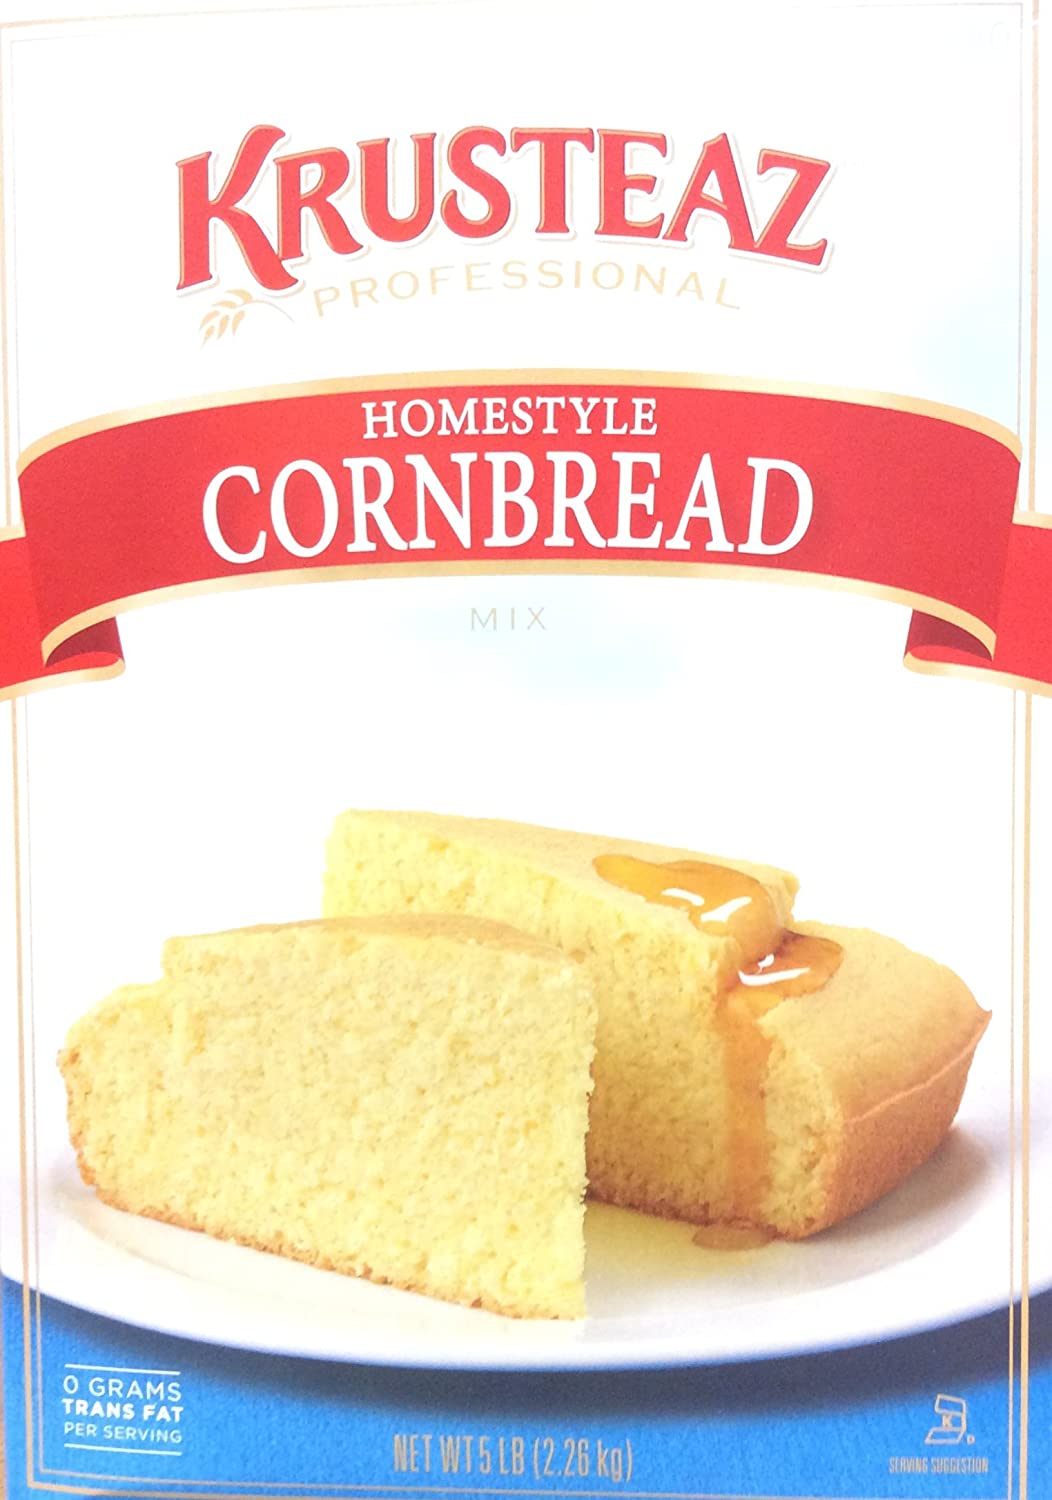 Amazon.com : 5 Pounds Krusteaz Homestyle Cornbread Mix Just Add Water Restaurant Quality : Pancake Mixes : Grocery & Gourmet Food